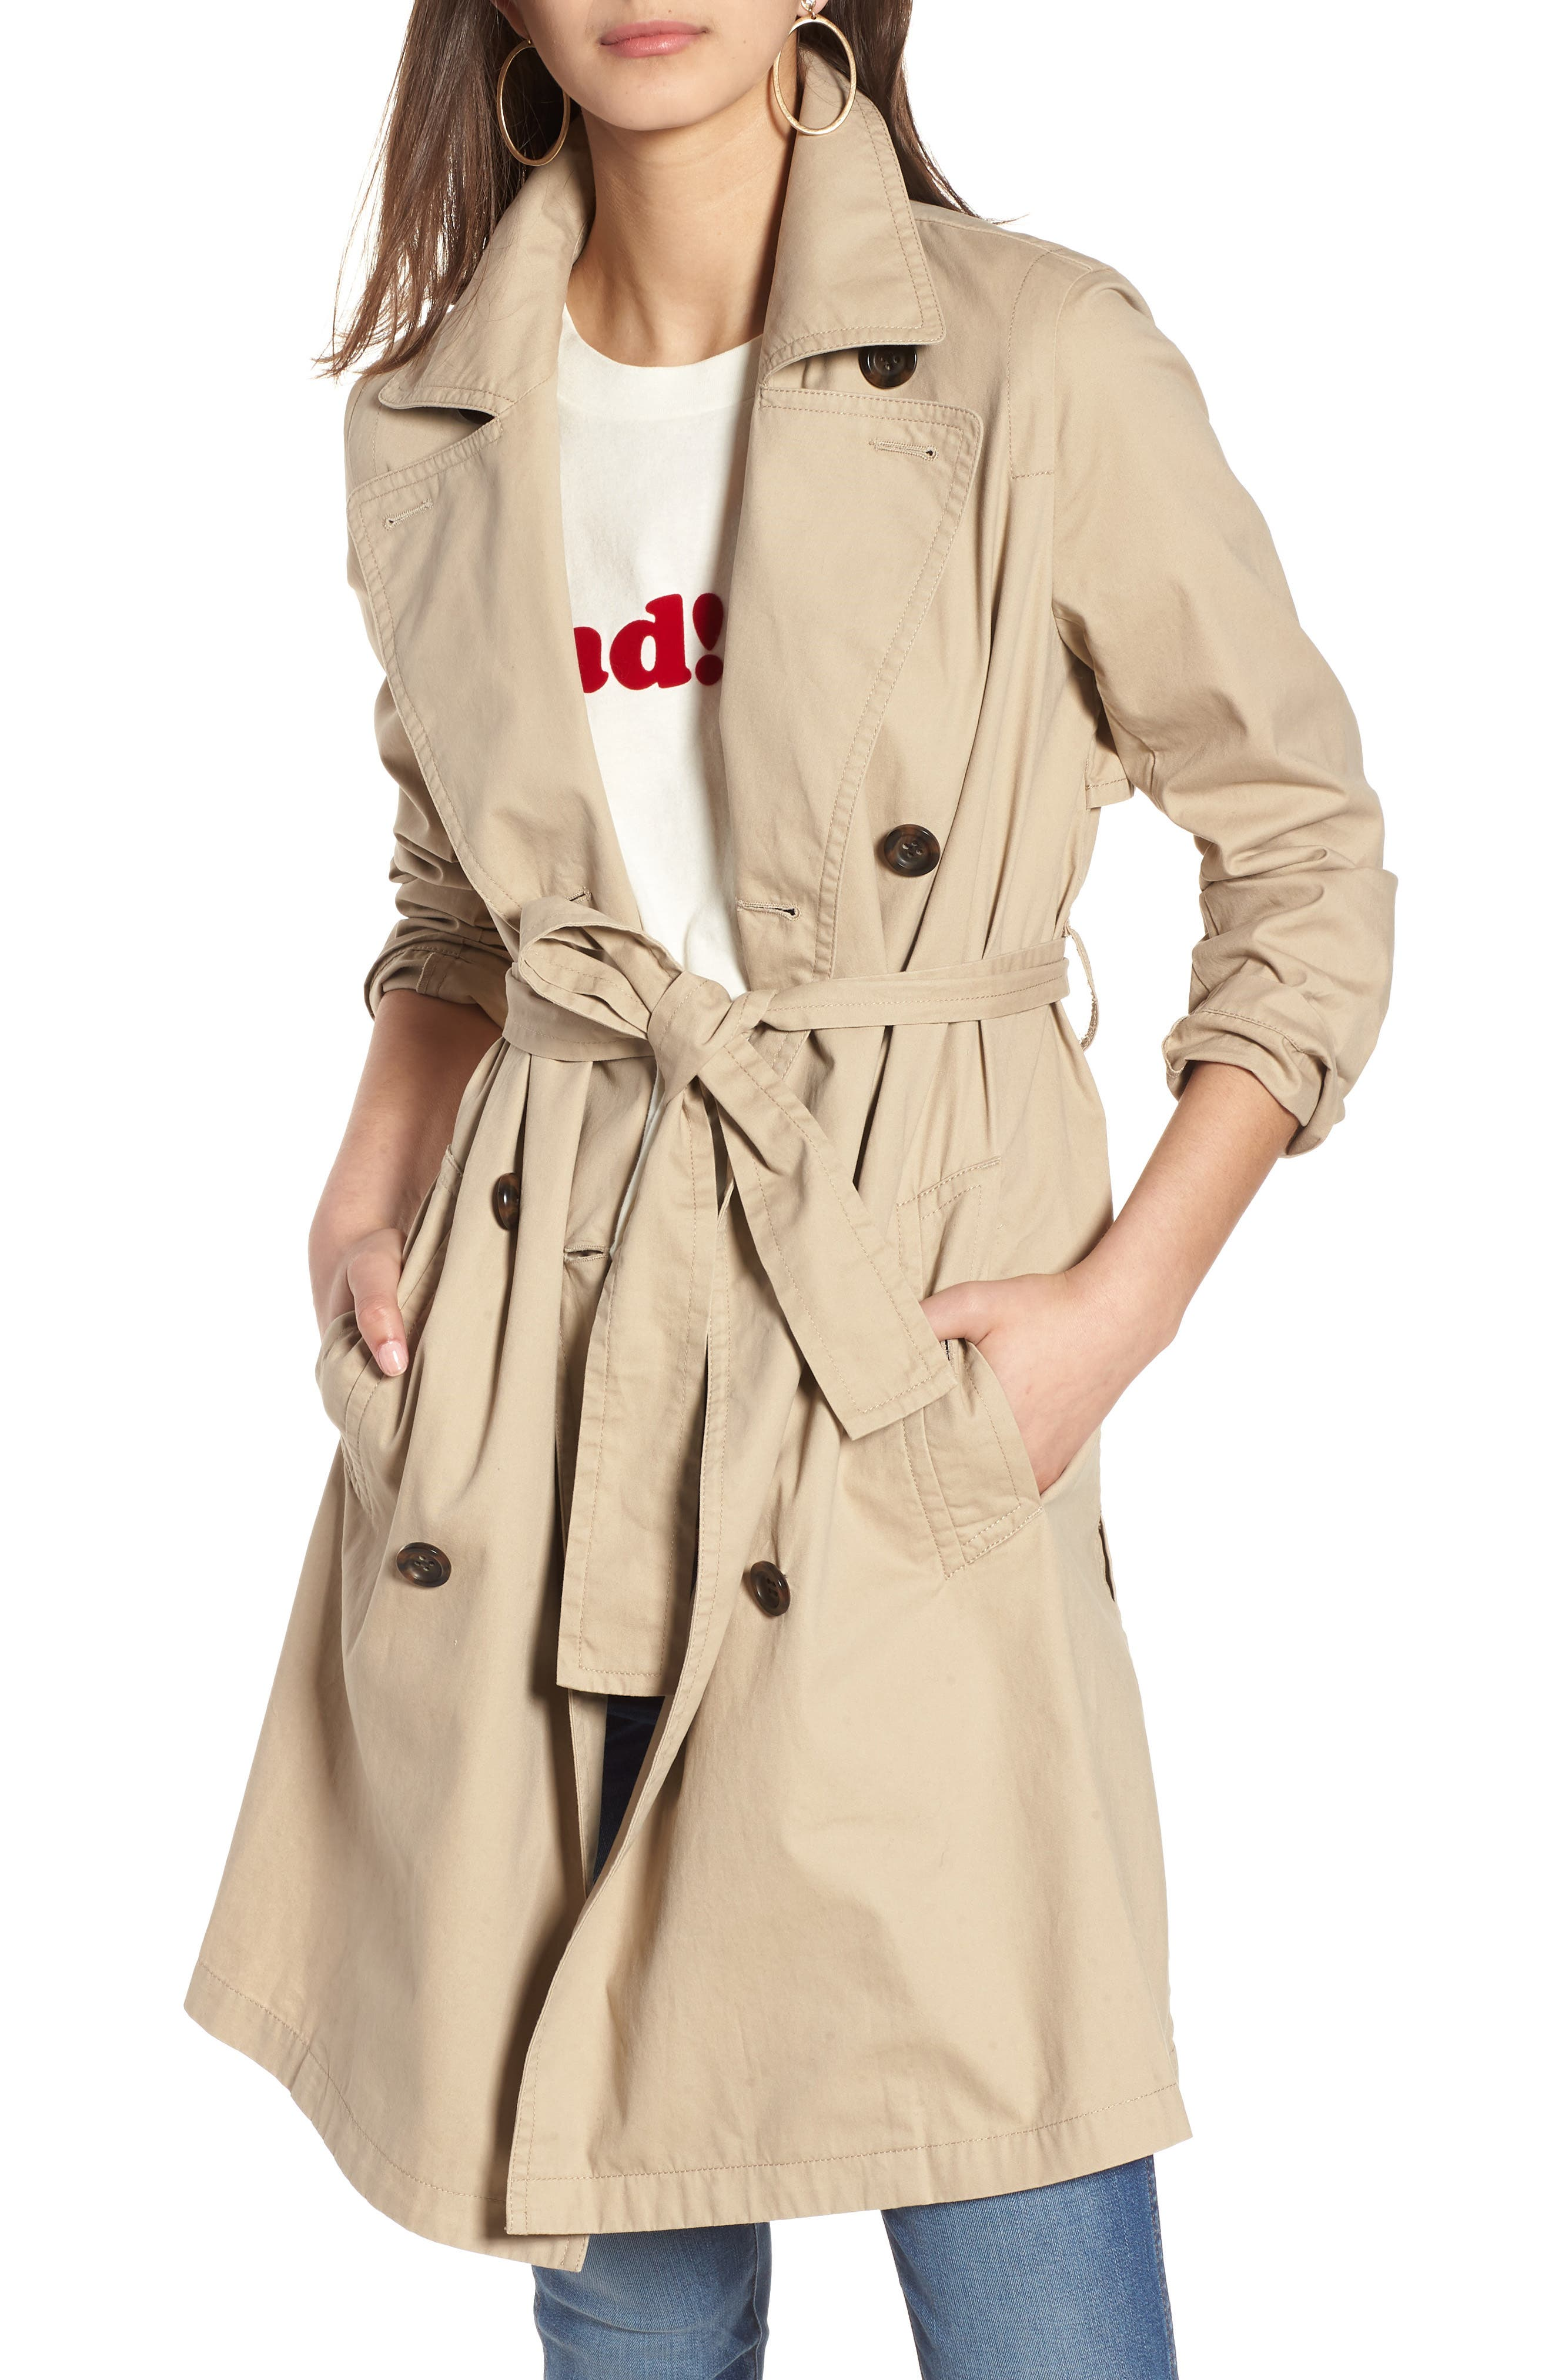 MADEWELL,                             Abroad Trench Coat,                             Main thumbnail 1, color,                             250